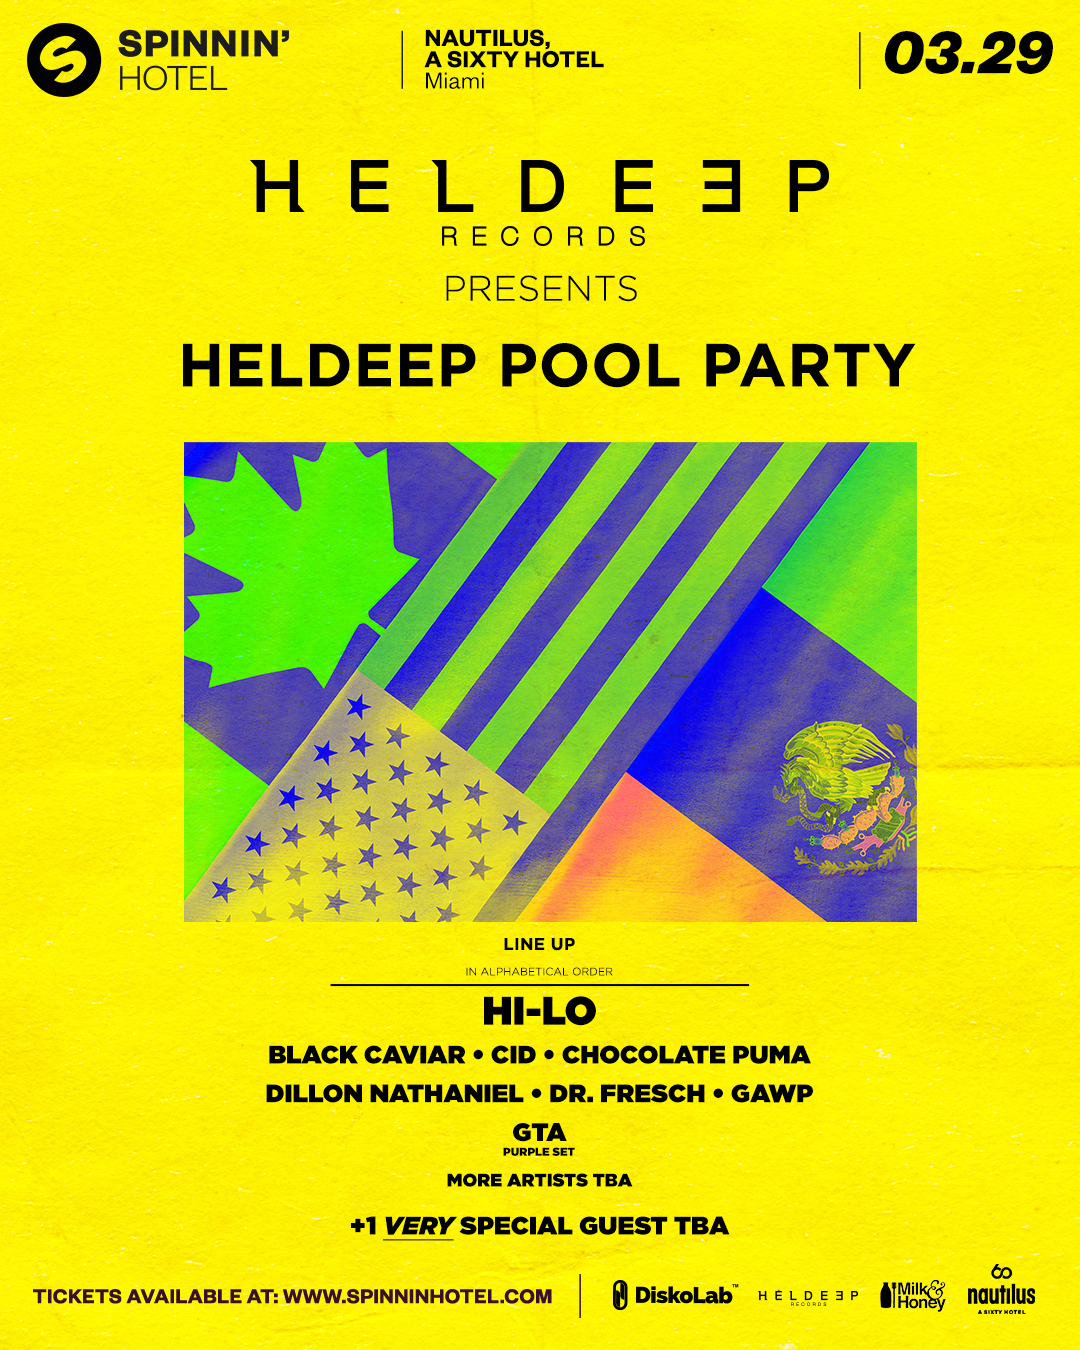 HELDEEP_POOL_PORTRAIT_INSTAGRAM.jpg